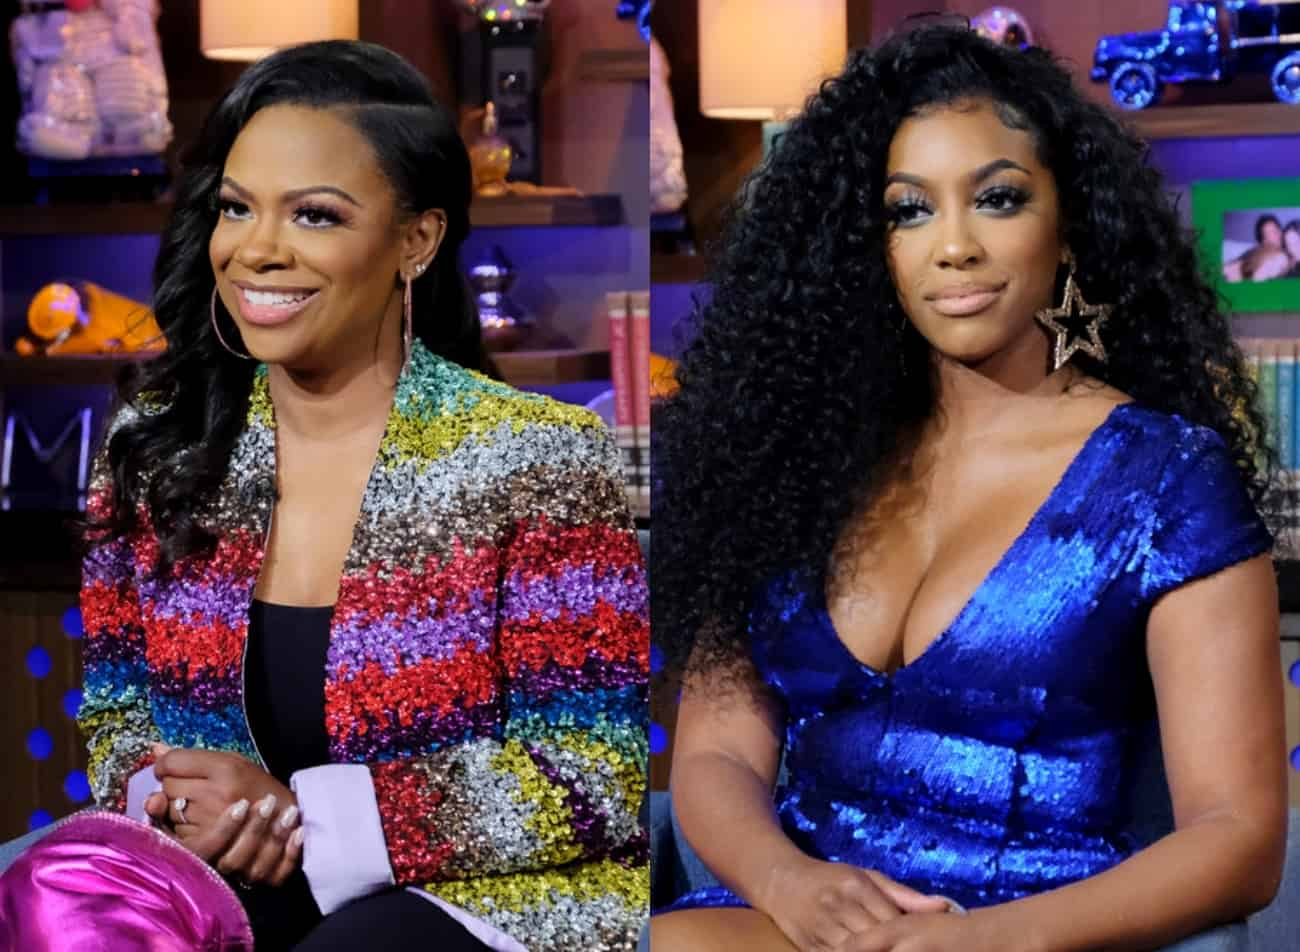 Kandi Burruss Says Bravo Deleted Scene of Her Confronting Porsha Williams on RHOA, Suggests Porsha Was Upset About Her Work With BLM as Porsha Defends Herself and Admits She Asked For Scene to Be Cut